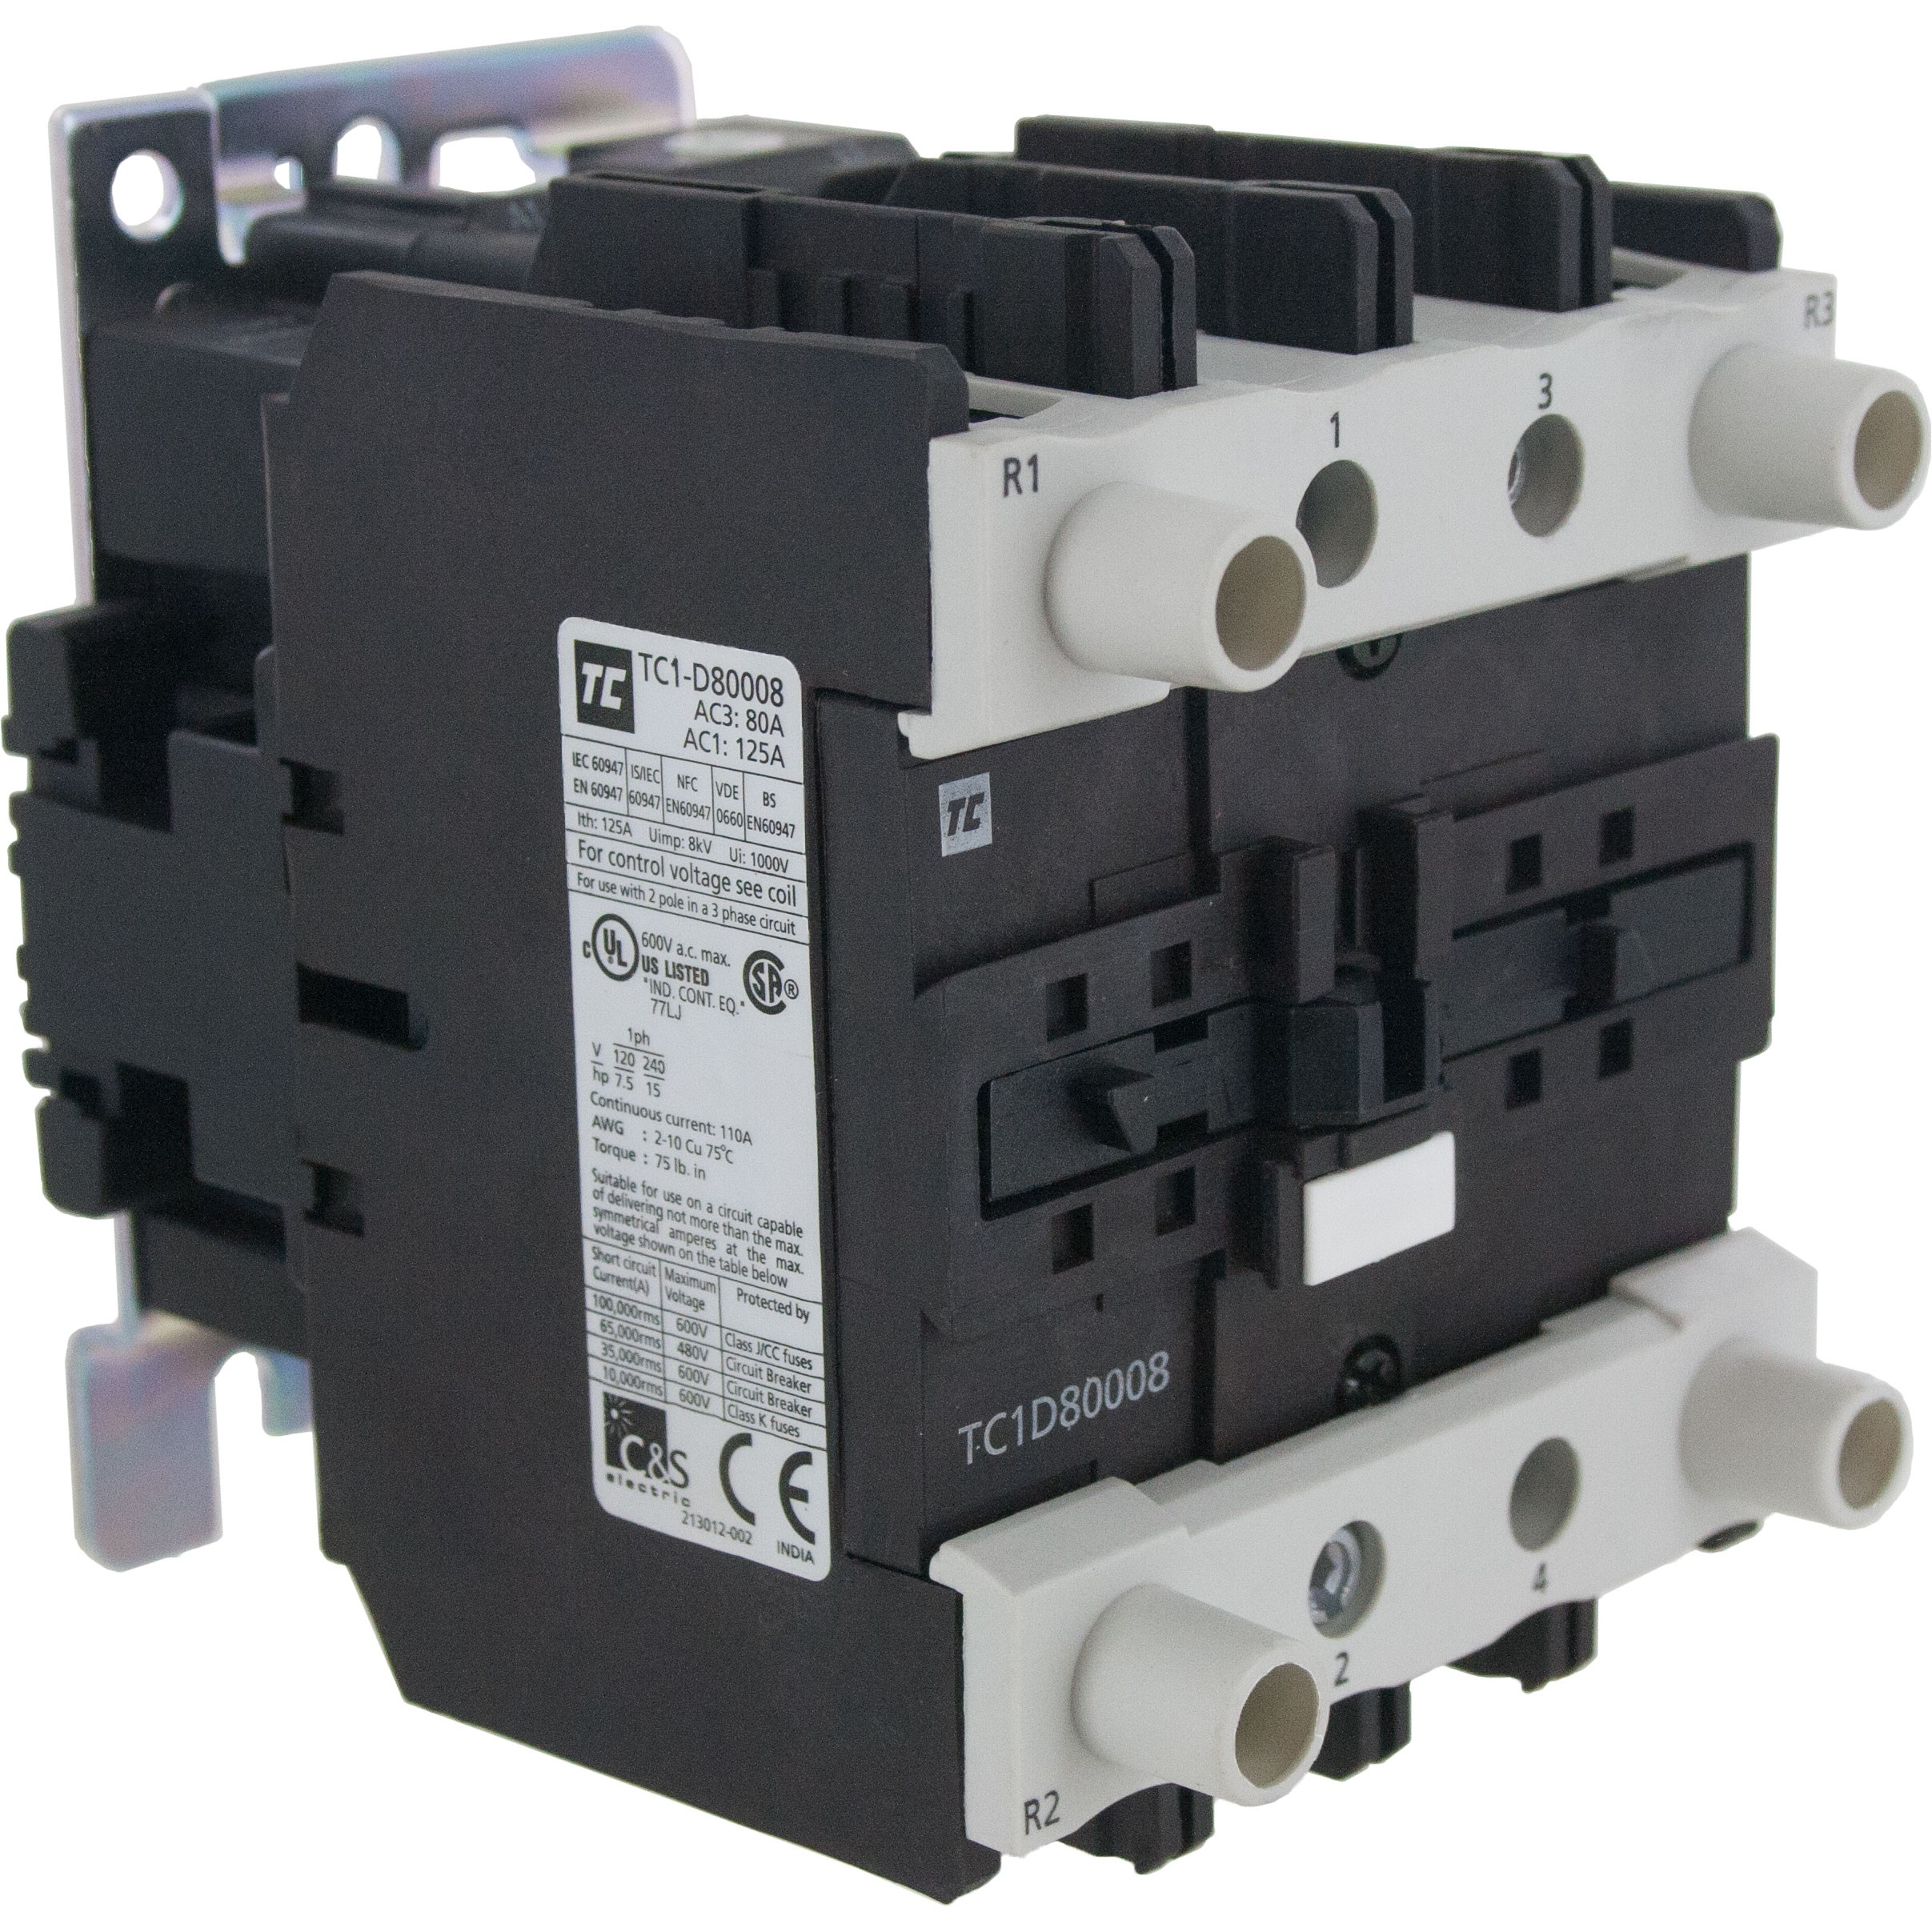 80 Amp Breaker Fuse Box 100 Wiring Diagrams 4 Pole Contactor N O 120 Volt Ac Coil Elecdirect Trailer 110v Boxes